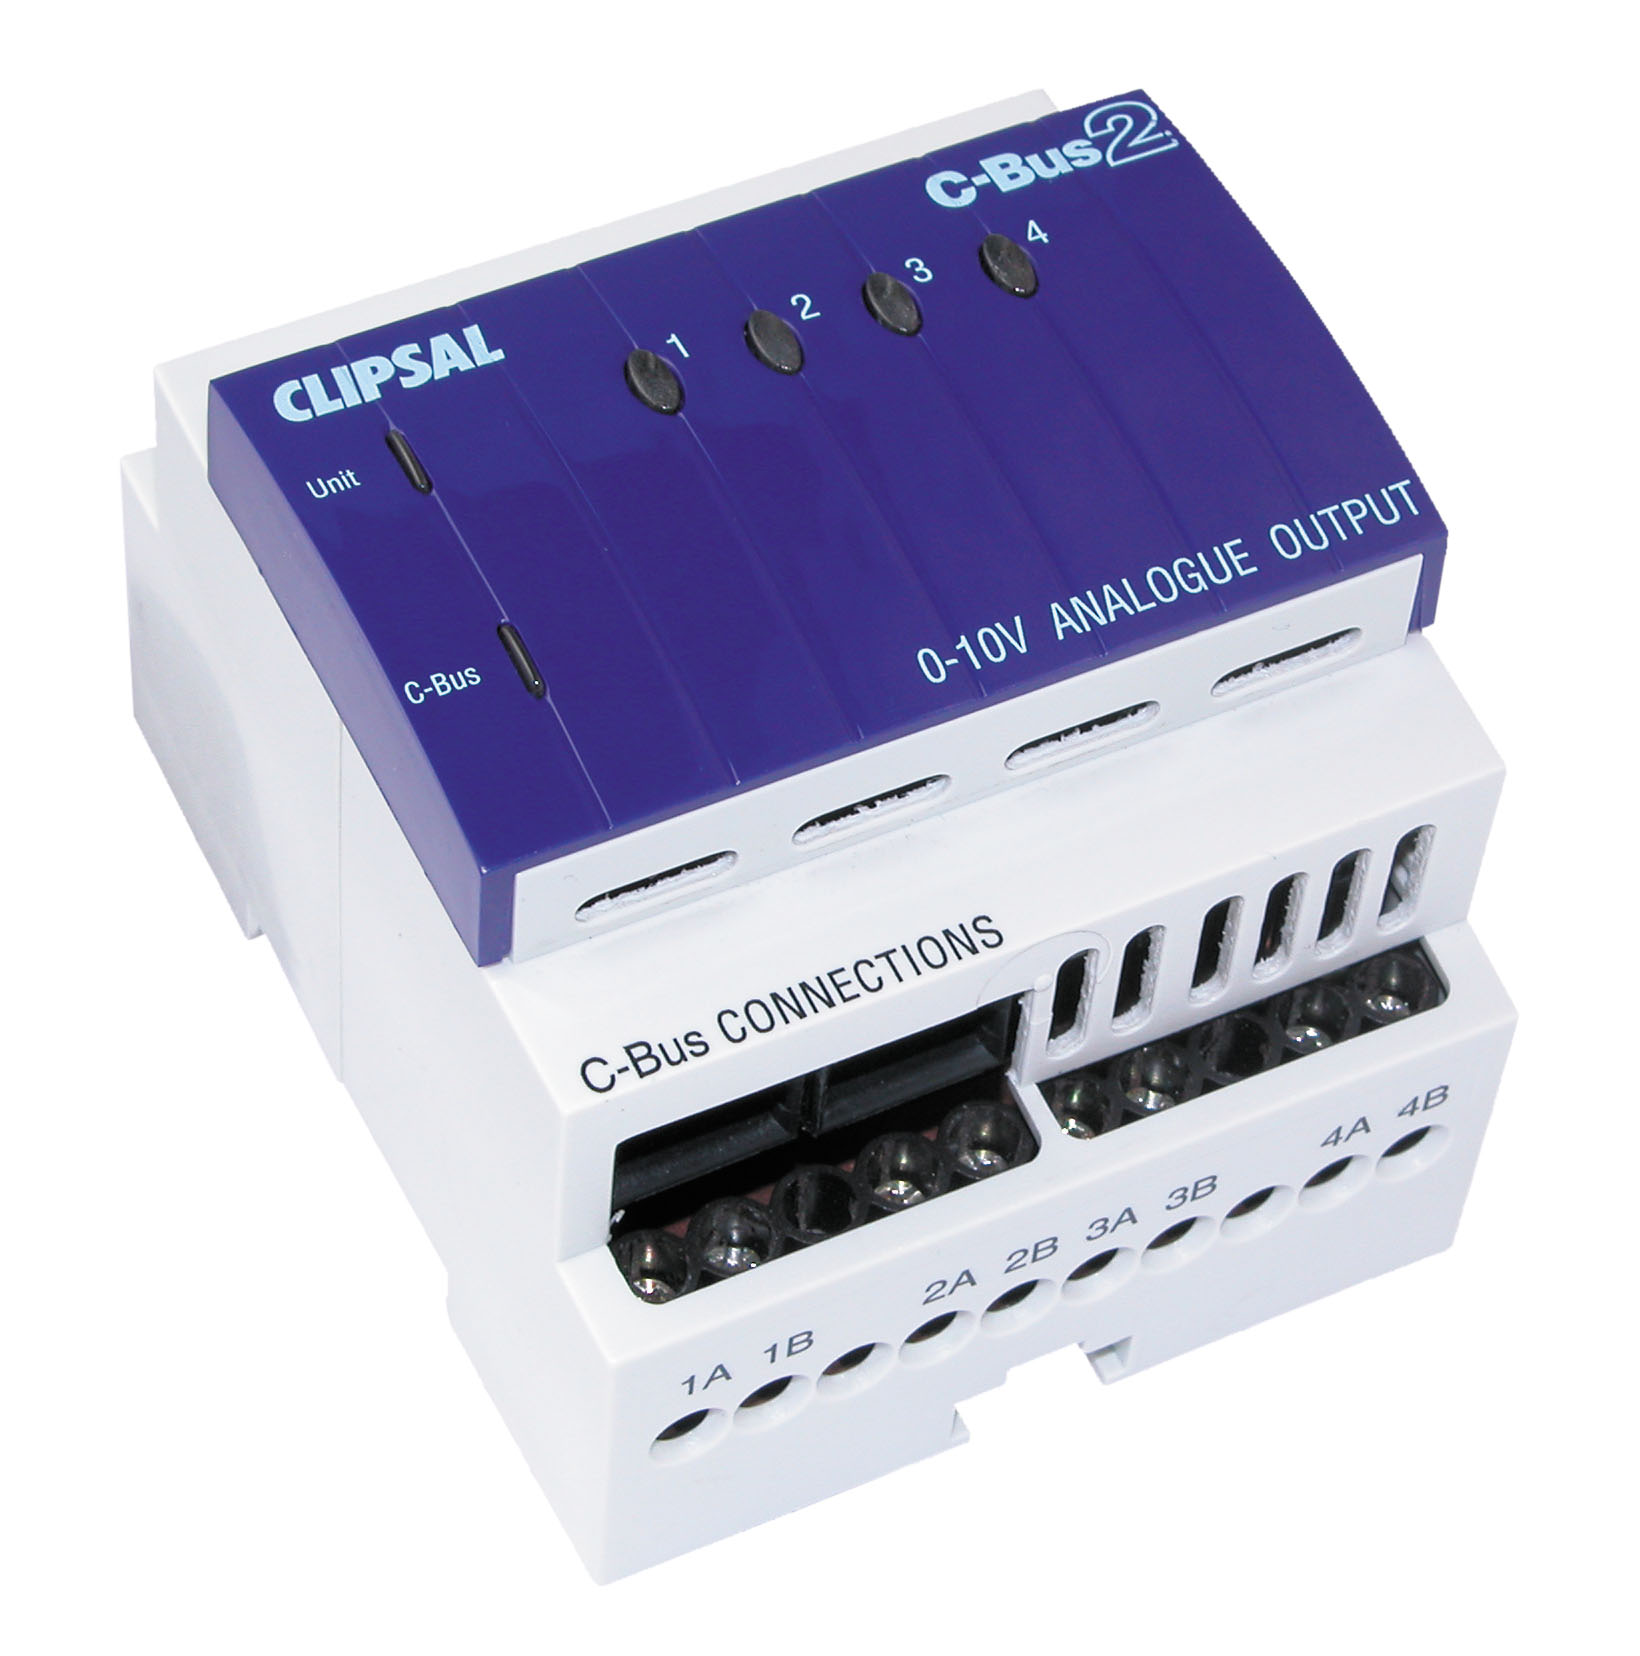 C-Bus lighting control system New Zealand